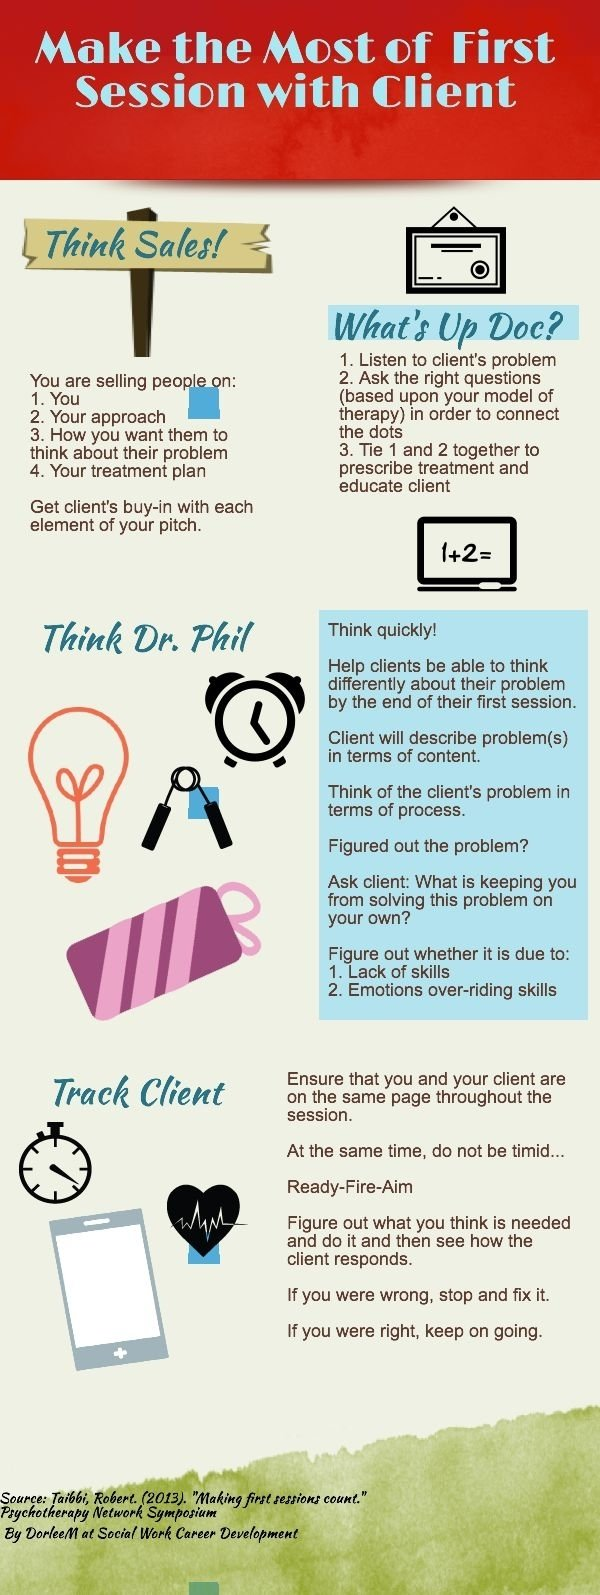 10 Elegant Group Therapy Ideas For Mental Health 698 best psychoeducation and group therapy ideas images on pinterest 2020